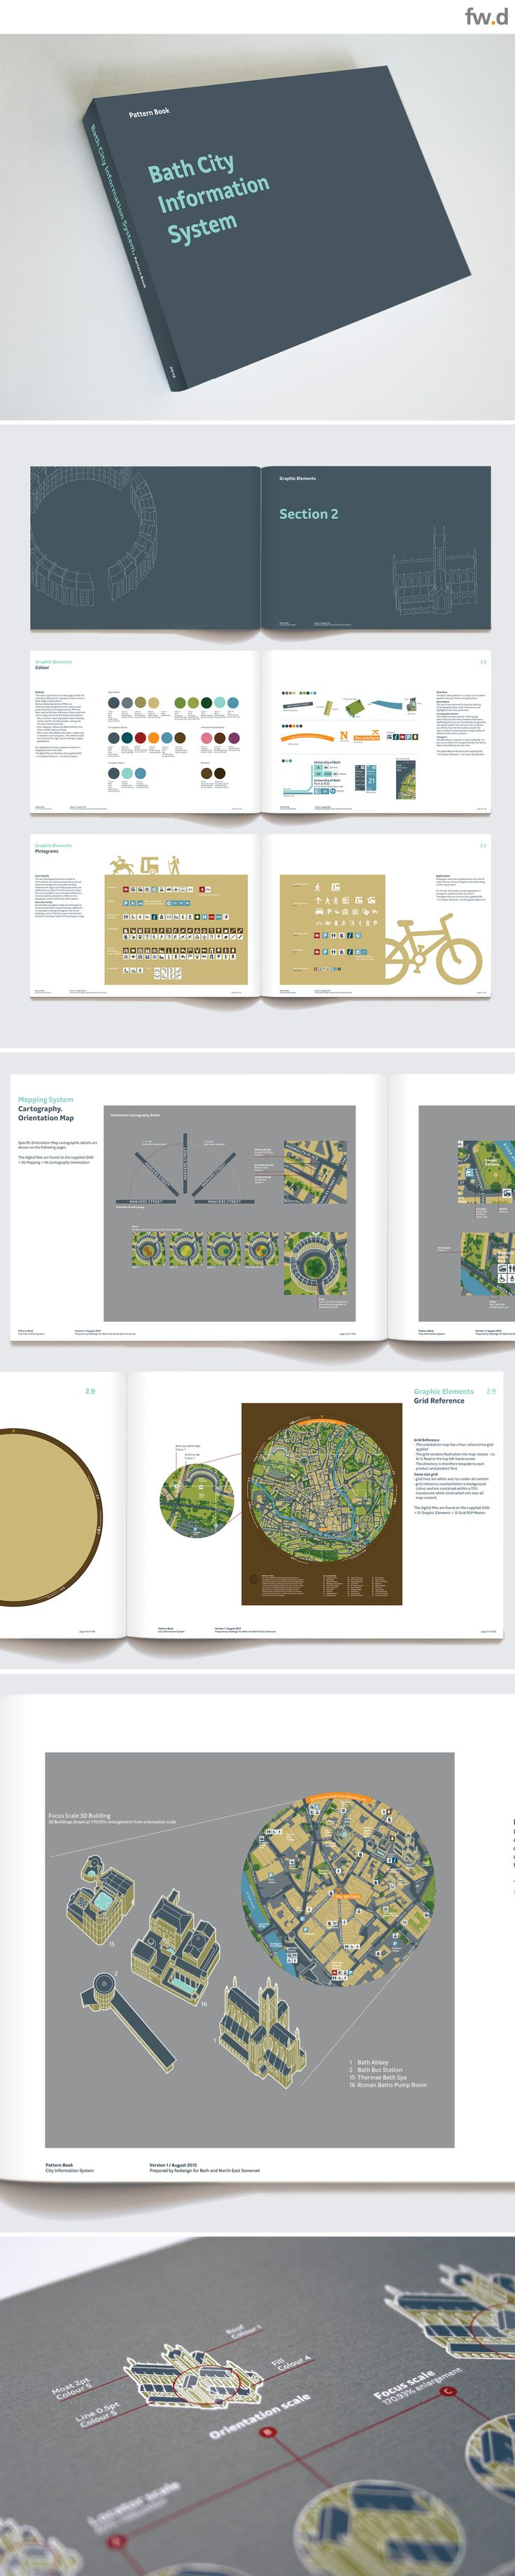 Bath City Information System pattern book. Detailed pedestrian wayfinding & signage design guidelines by fwdesign. www.fwdesign.com  #guidelines #layout #graphics